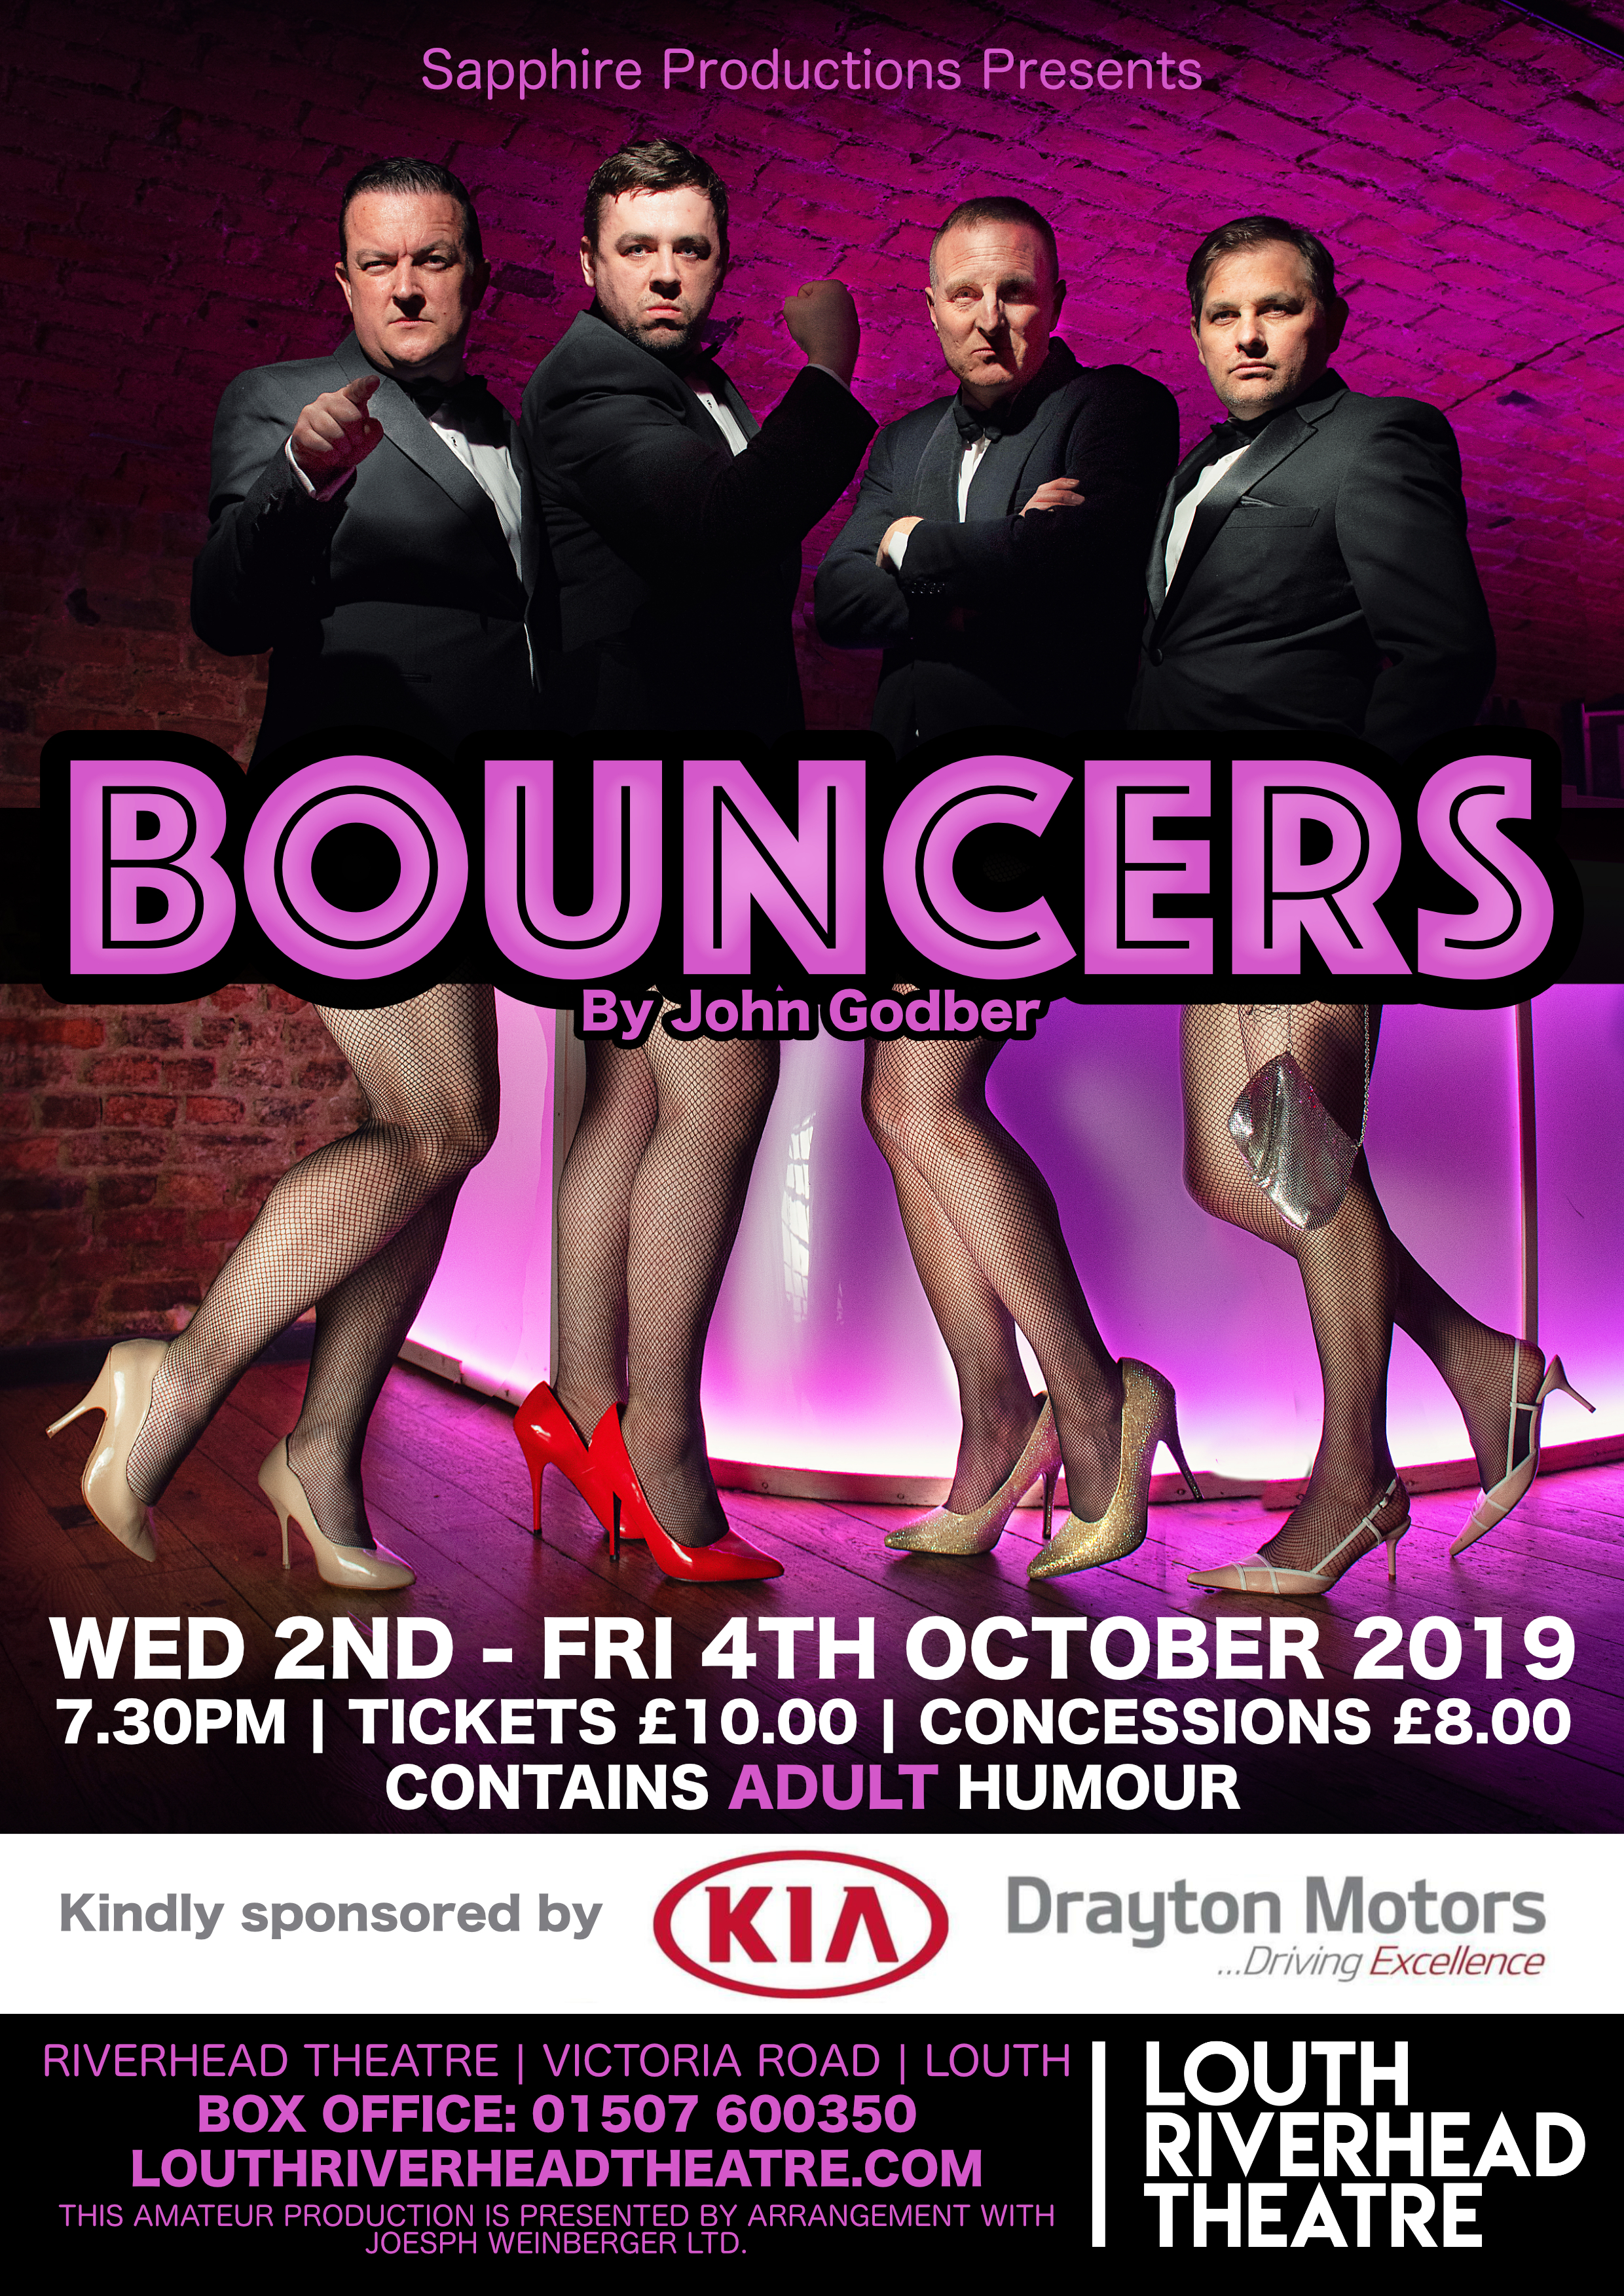 Bouncers Poster.jpg